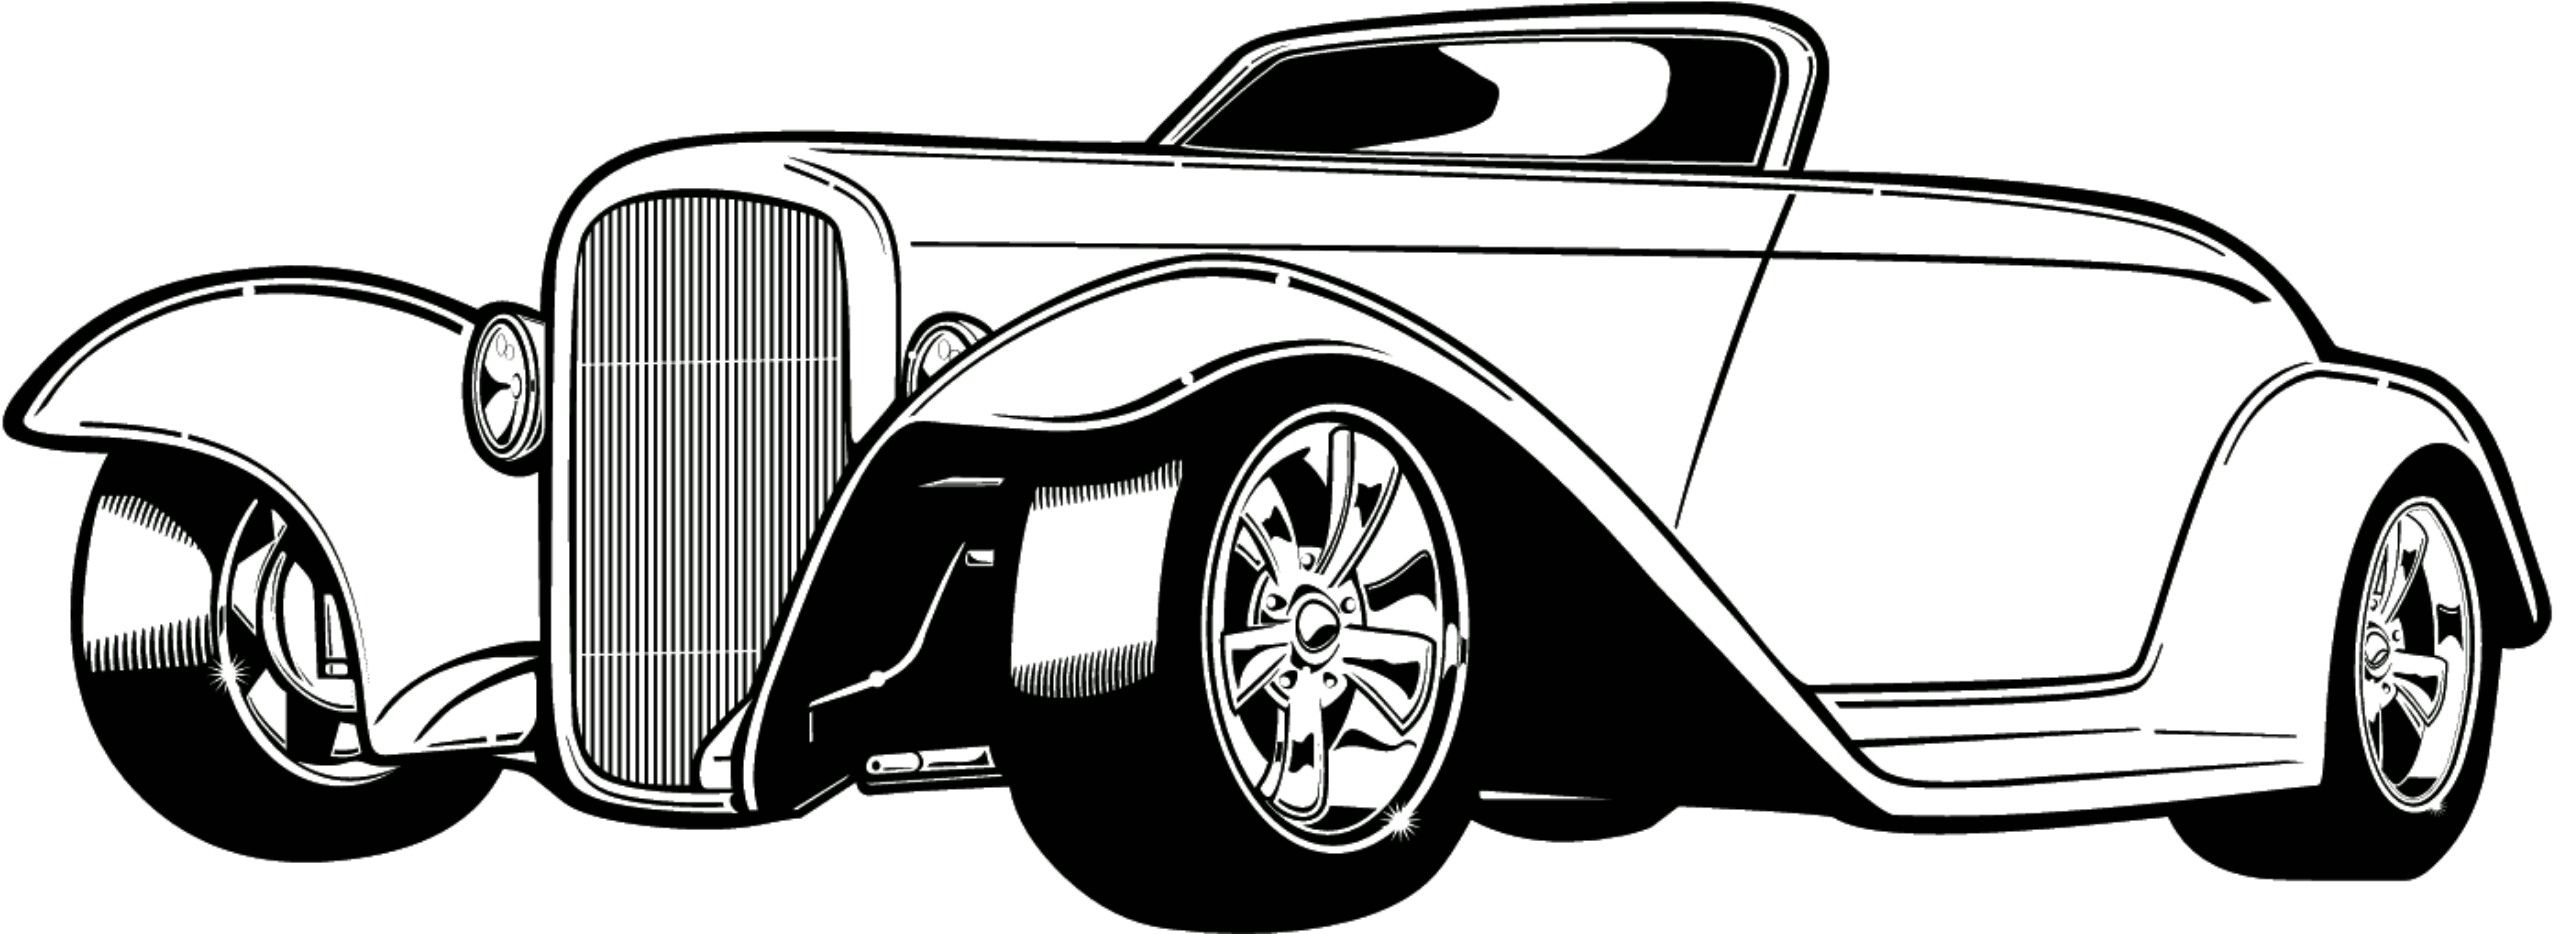 small resolution of cars coloring pages adult coloring pages hot rod cars hot rods line